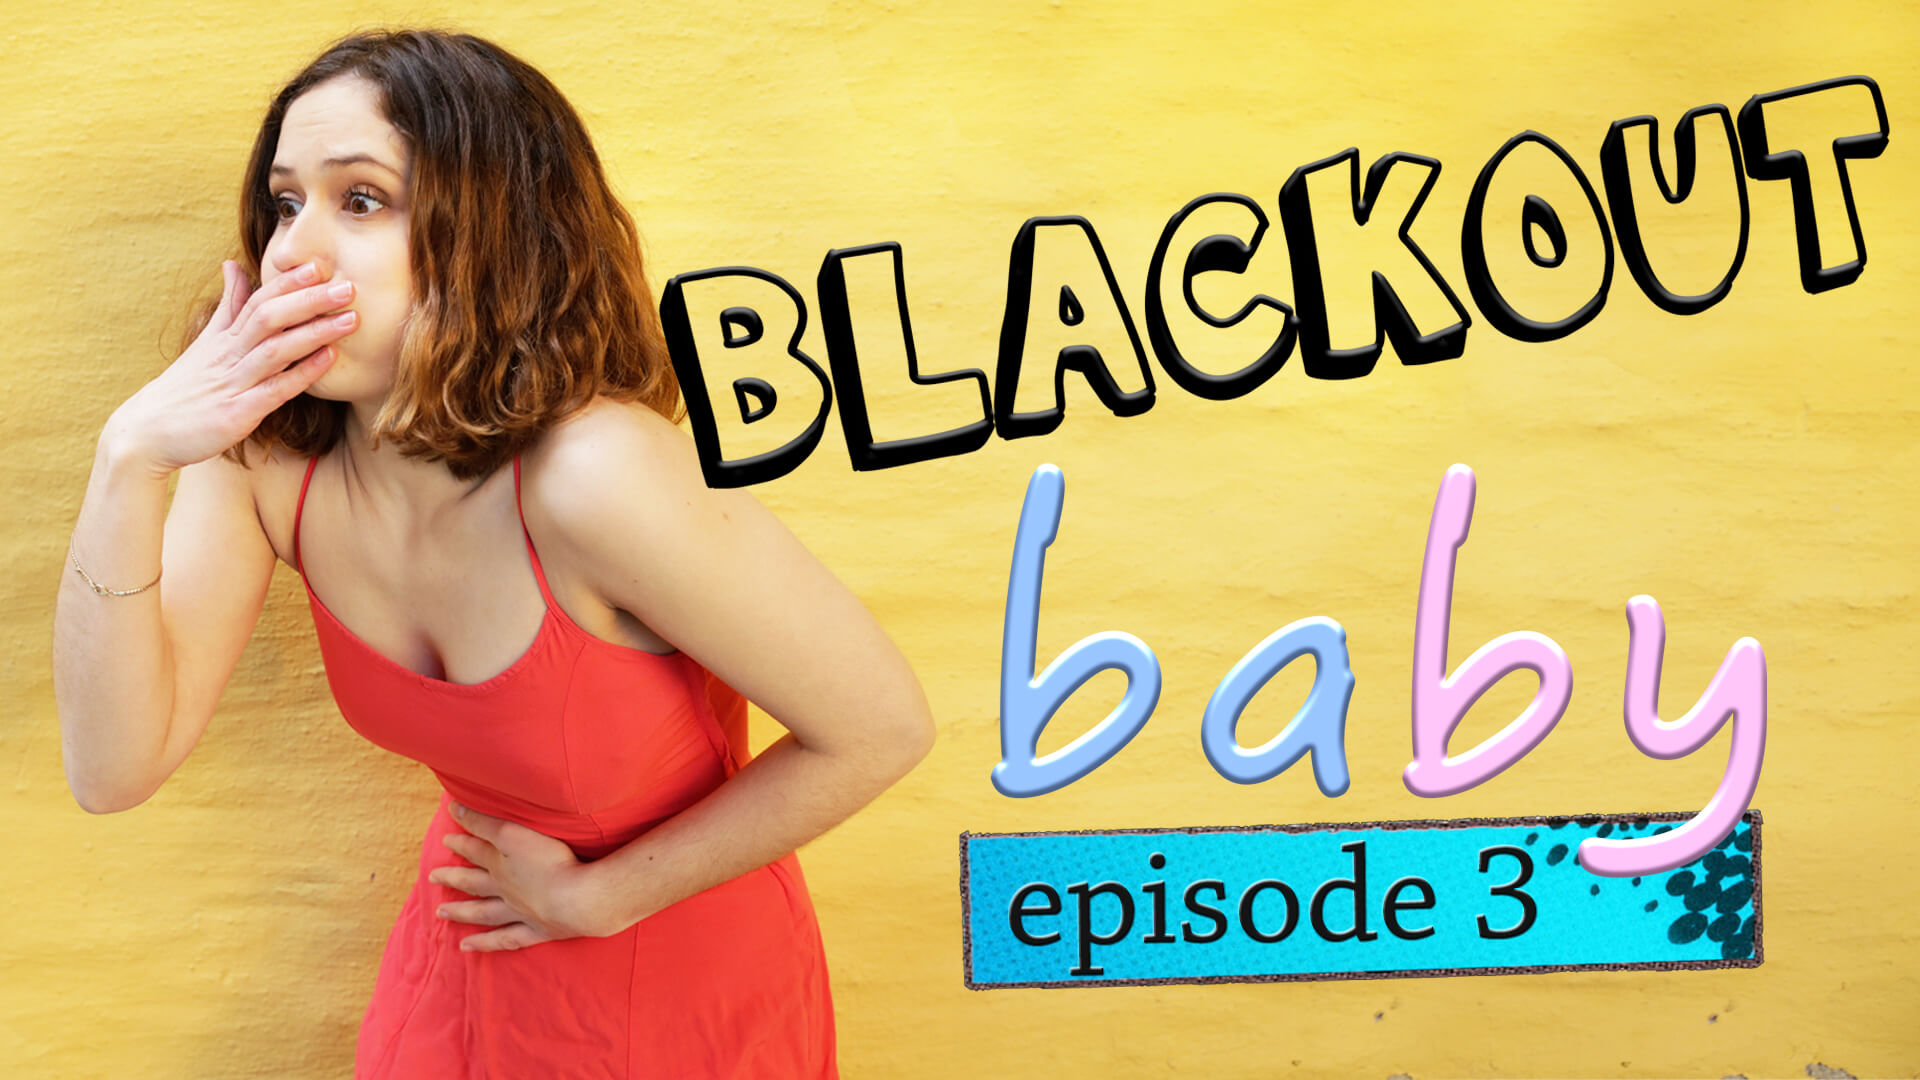 BLACKOUT baby – episode 3